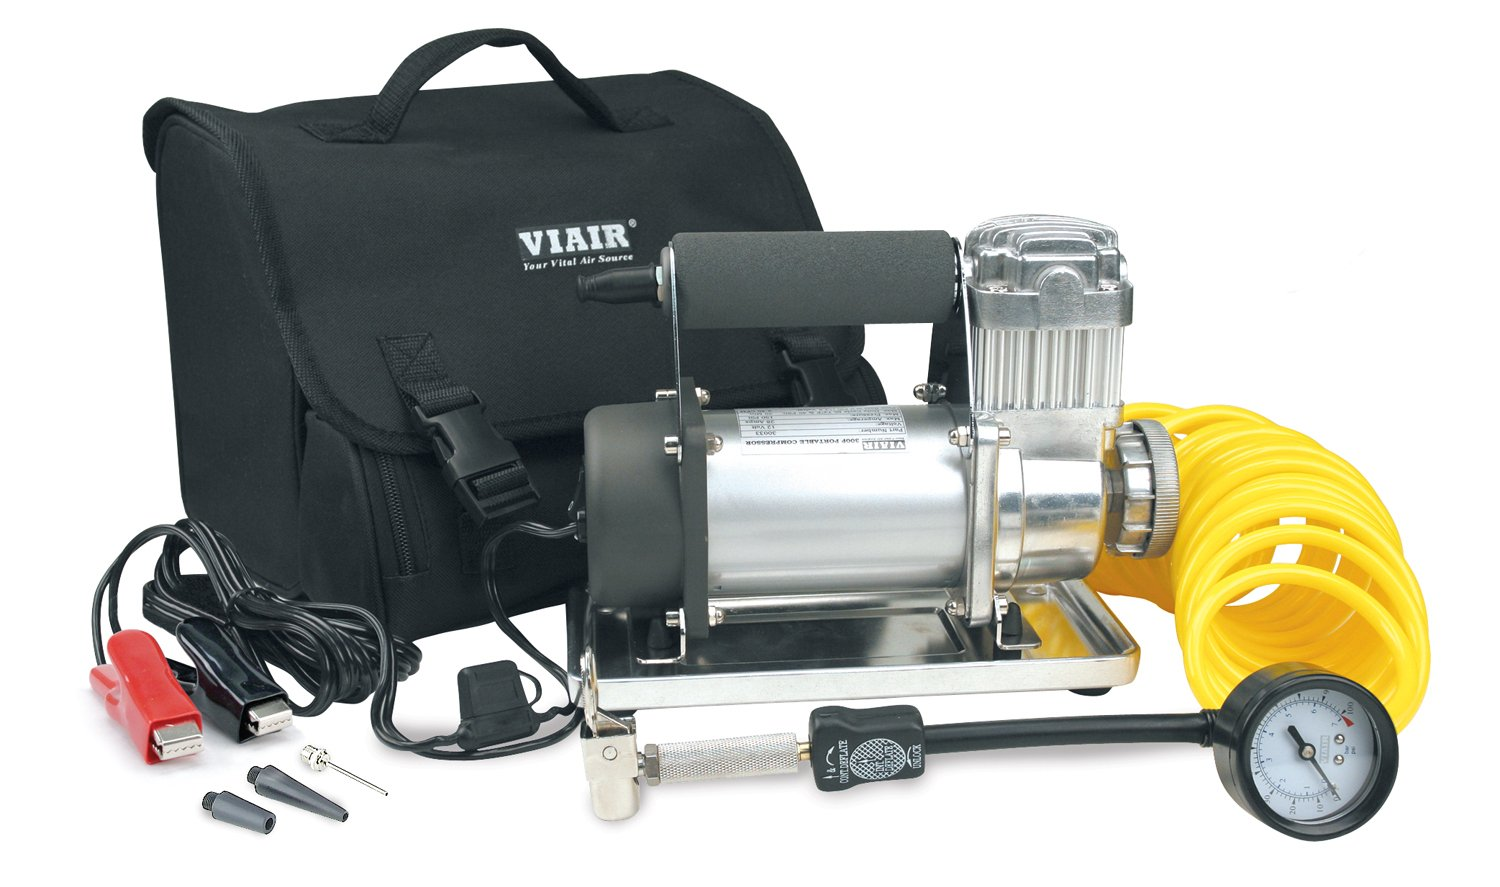 10. Viair 300P portable hand held Air Compressor